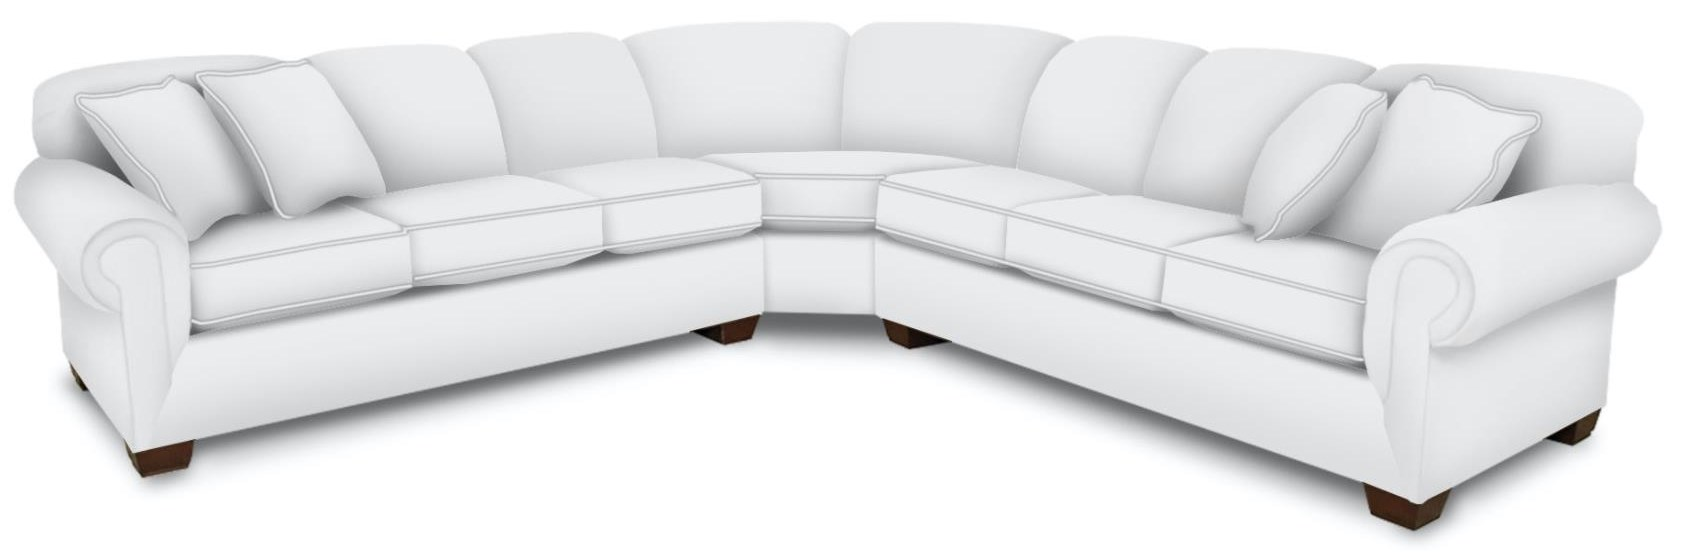 3 PC Super Wedge Sectional